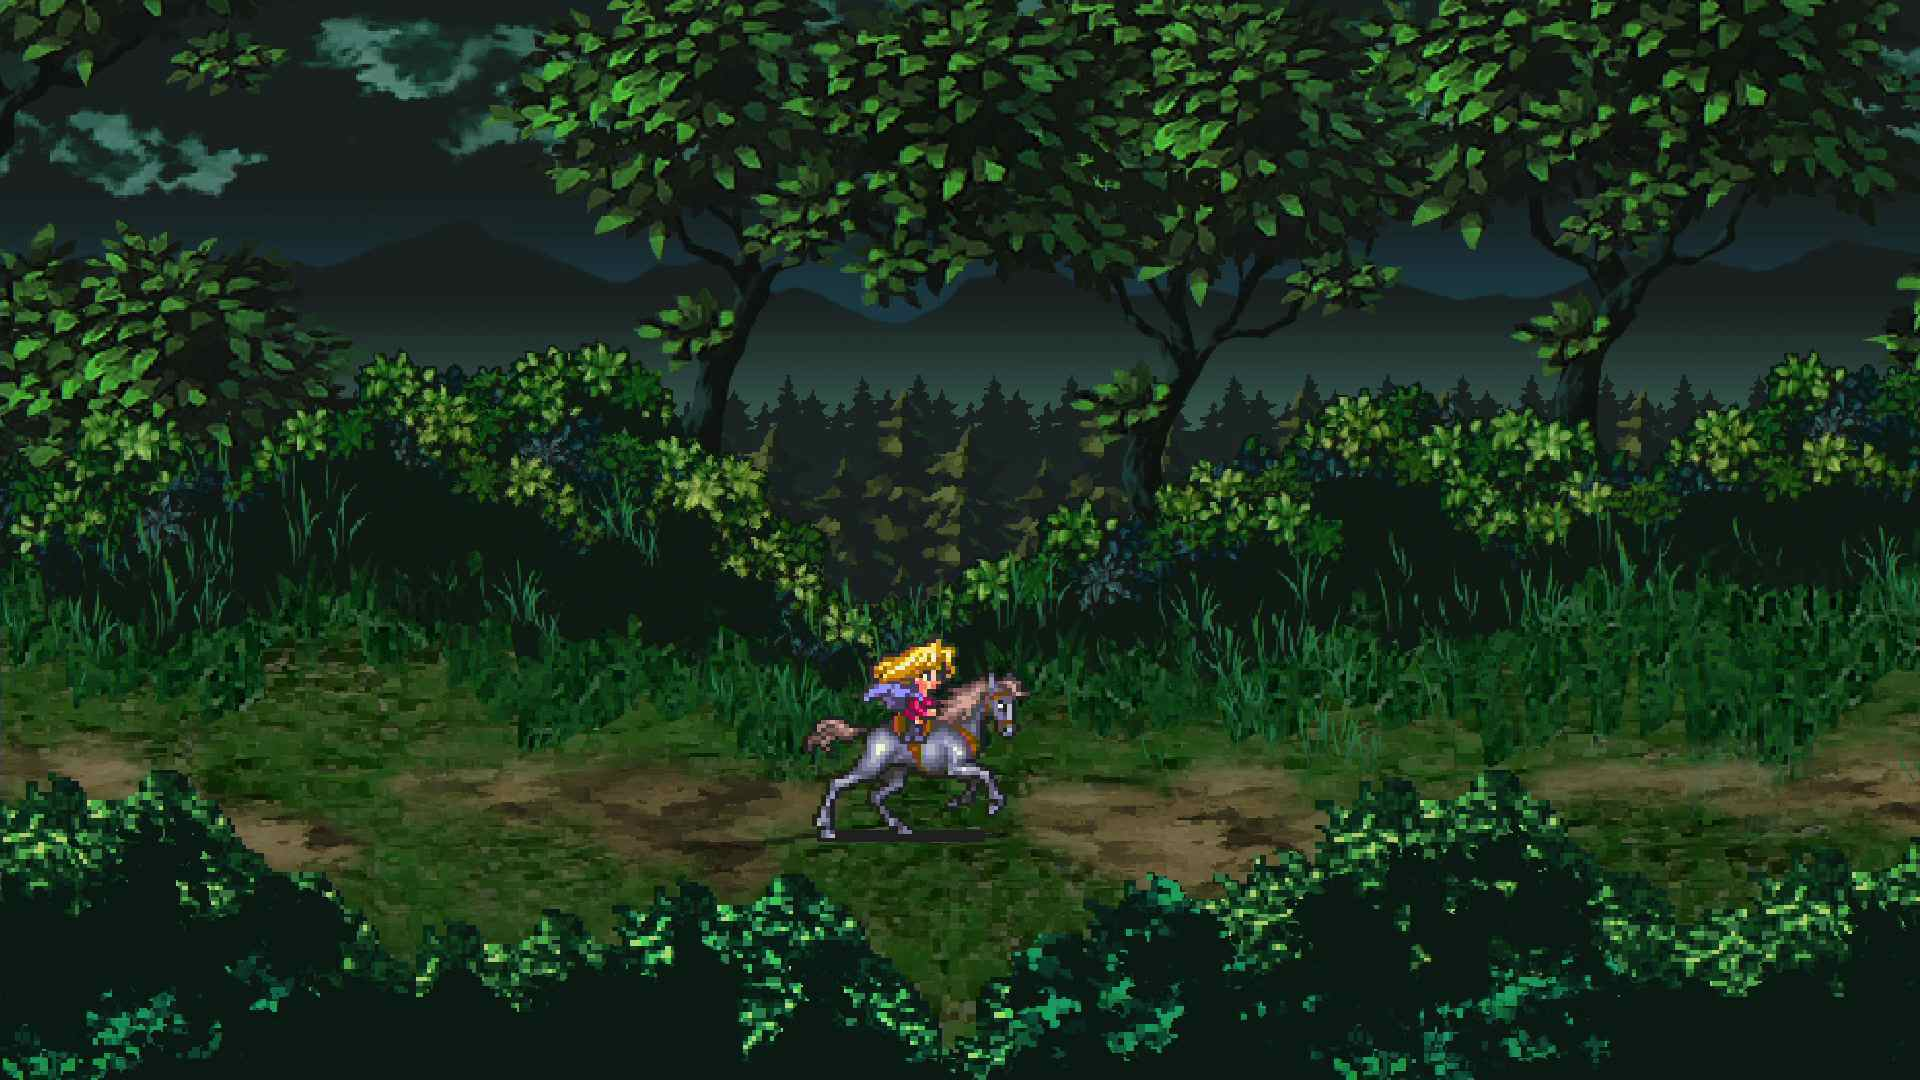 Catching Up With Kawazu: The Legendary RPG Developer Talks SaGa and Why We Shouldn't Call Everything an RPG